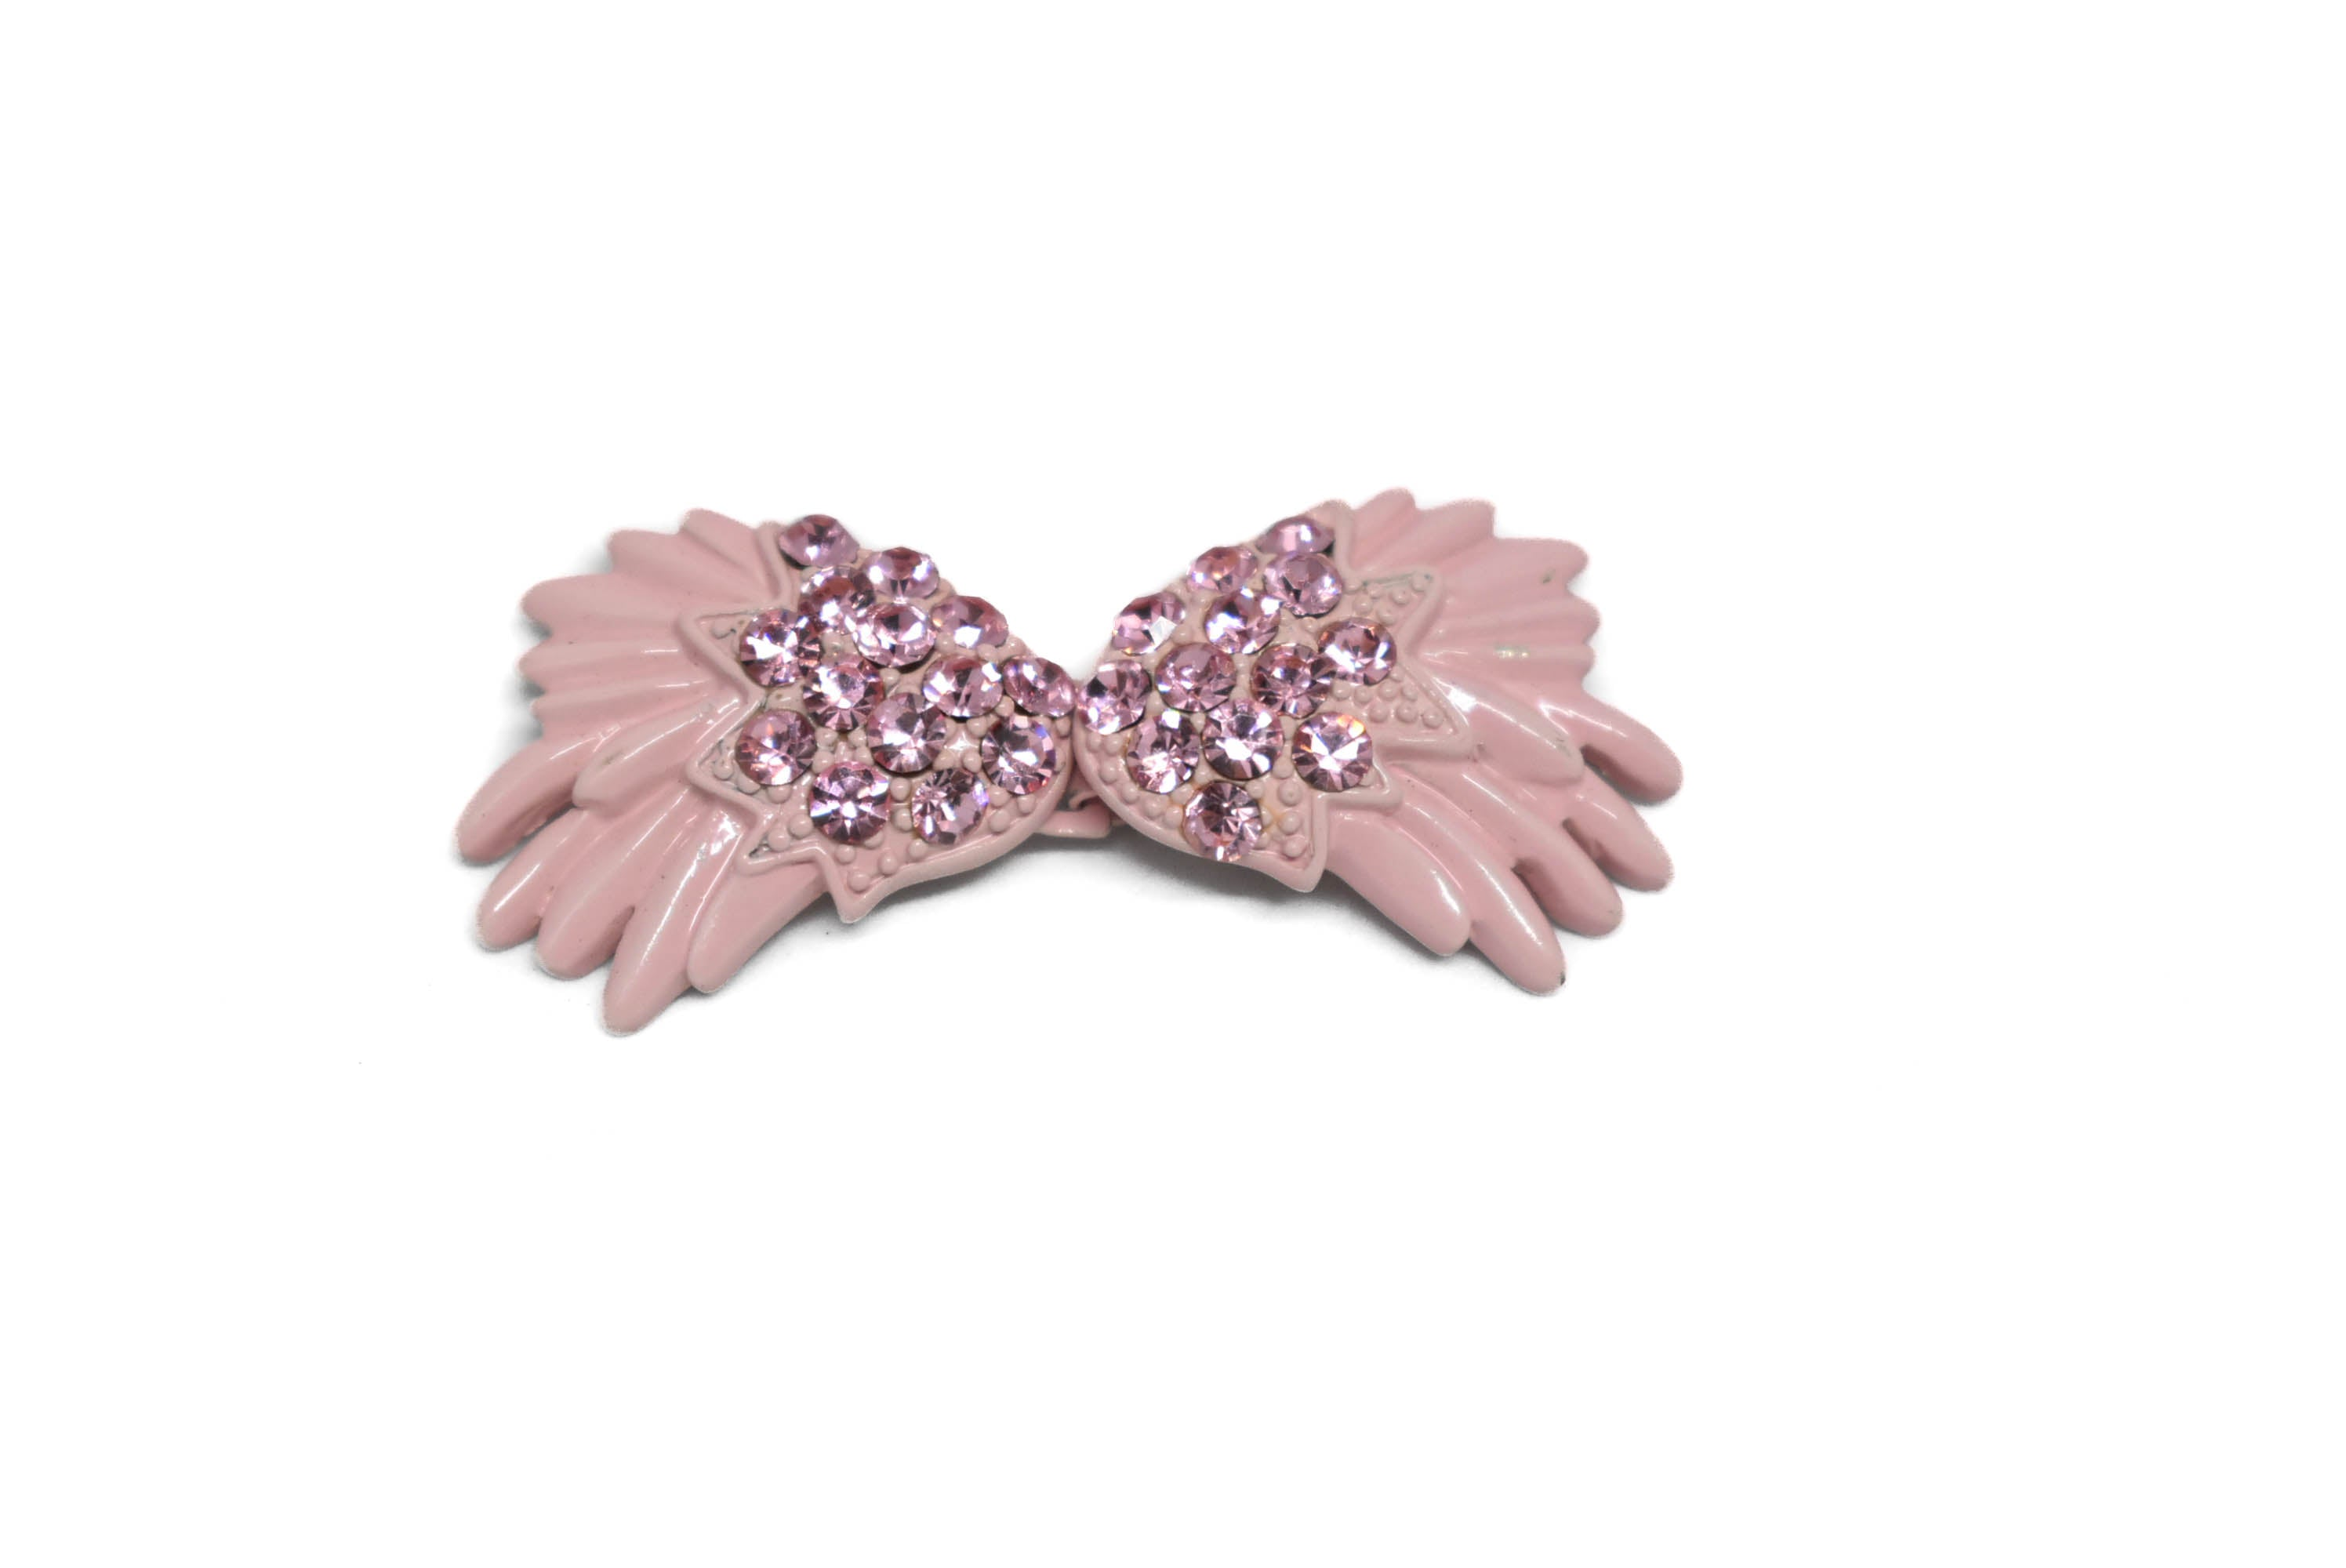 Fancy Bow Rhinestone Connector - Closure